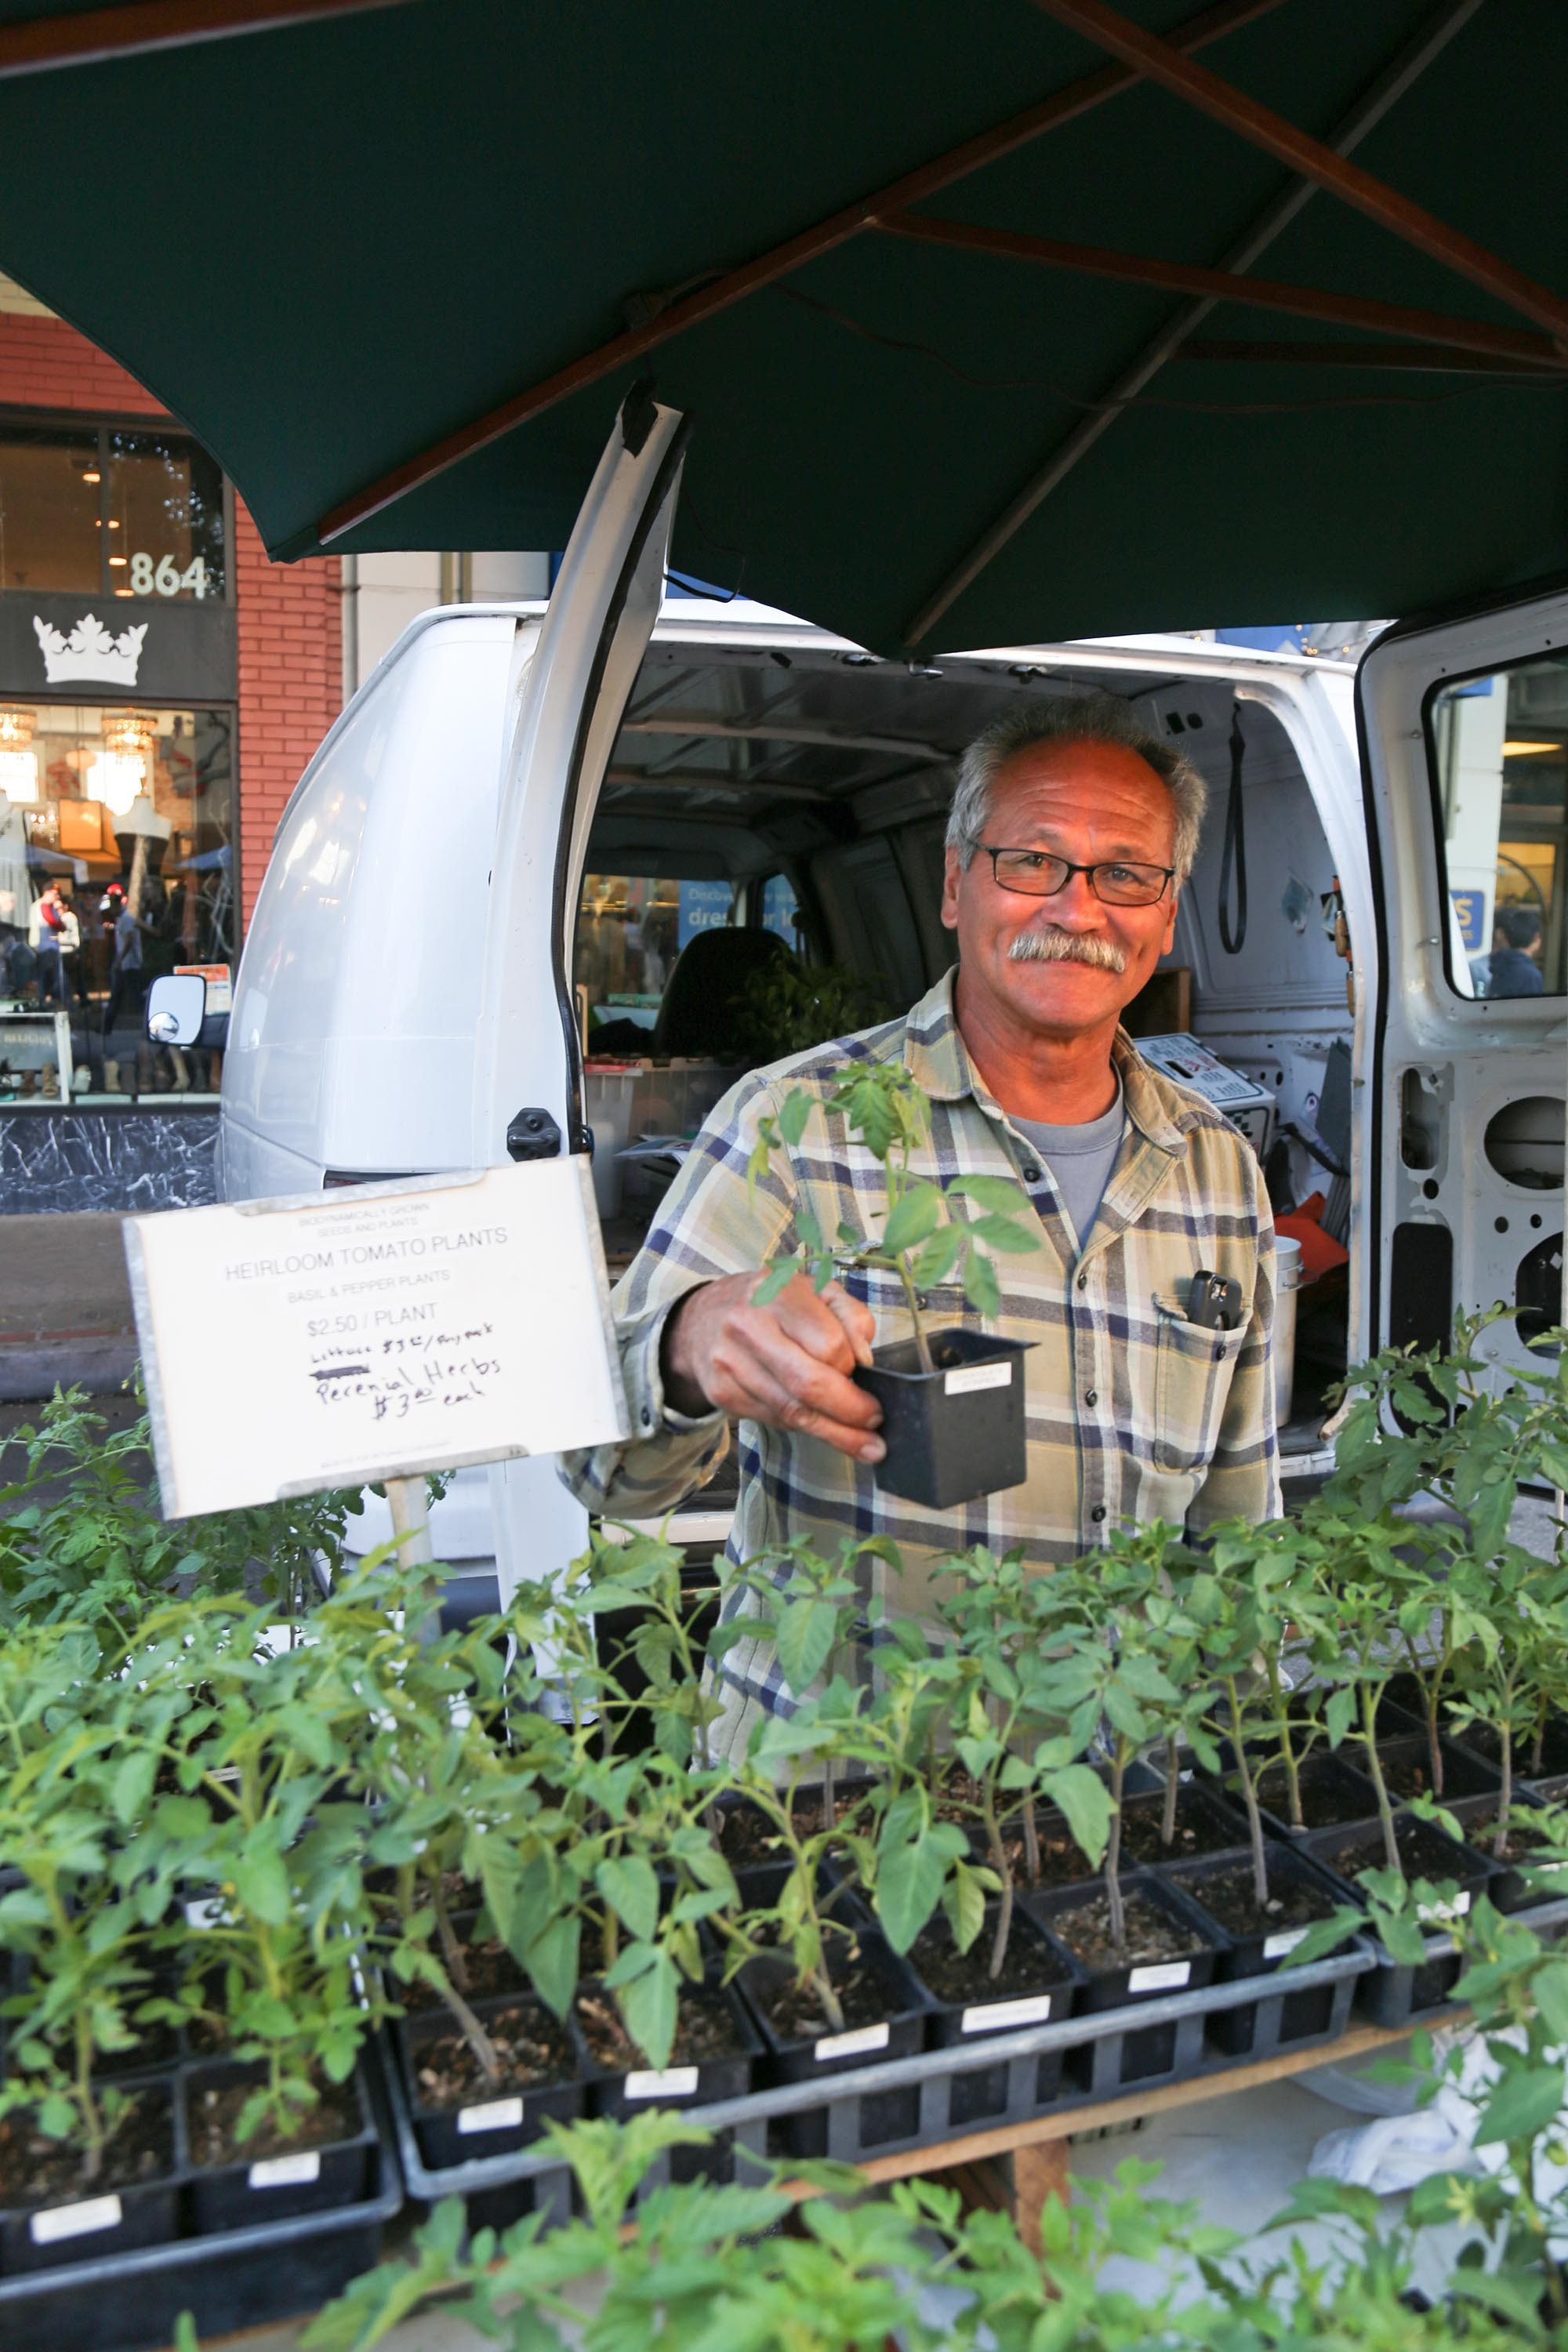 From 1978 to 2018, 40 years of farmer's markets in SLO | Flavor